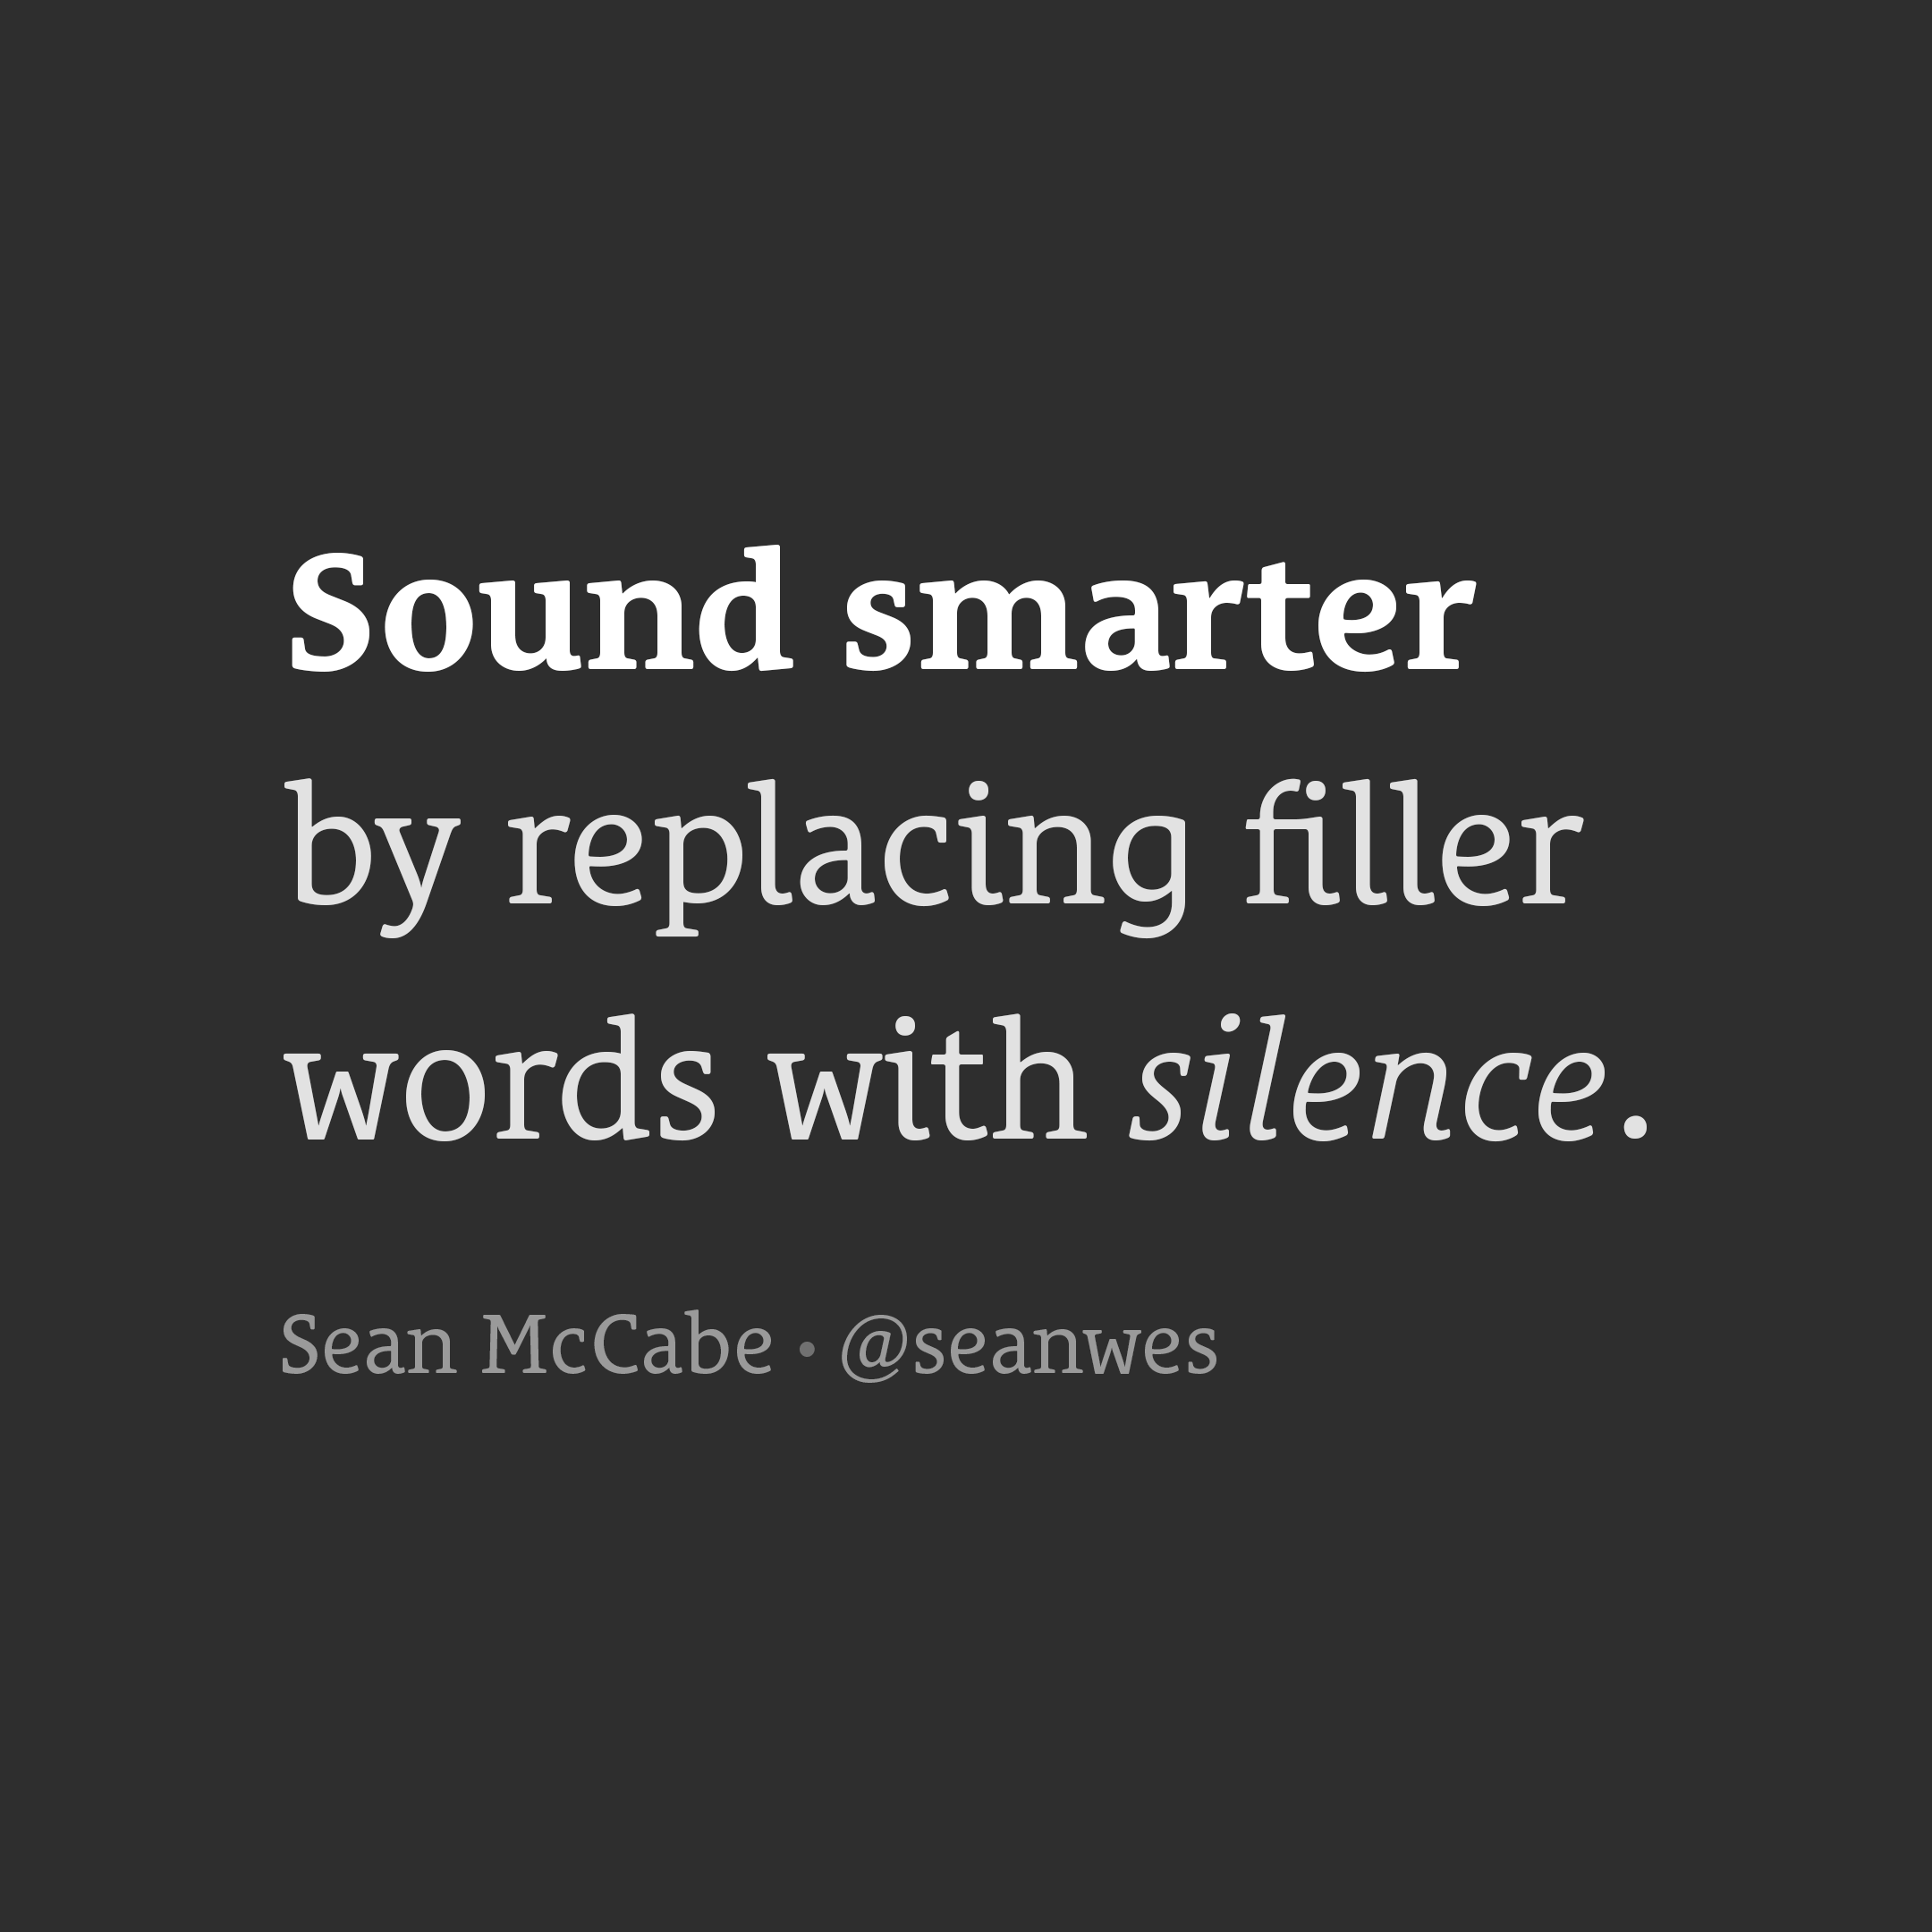 Sound smarter by replacing filler words with silence.